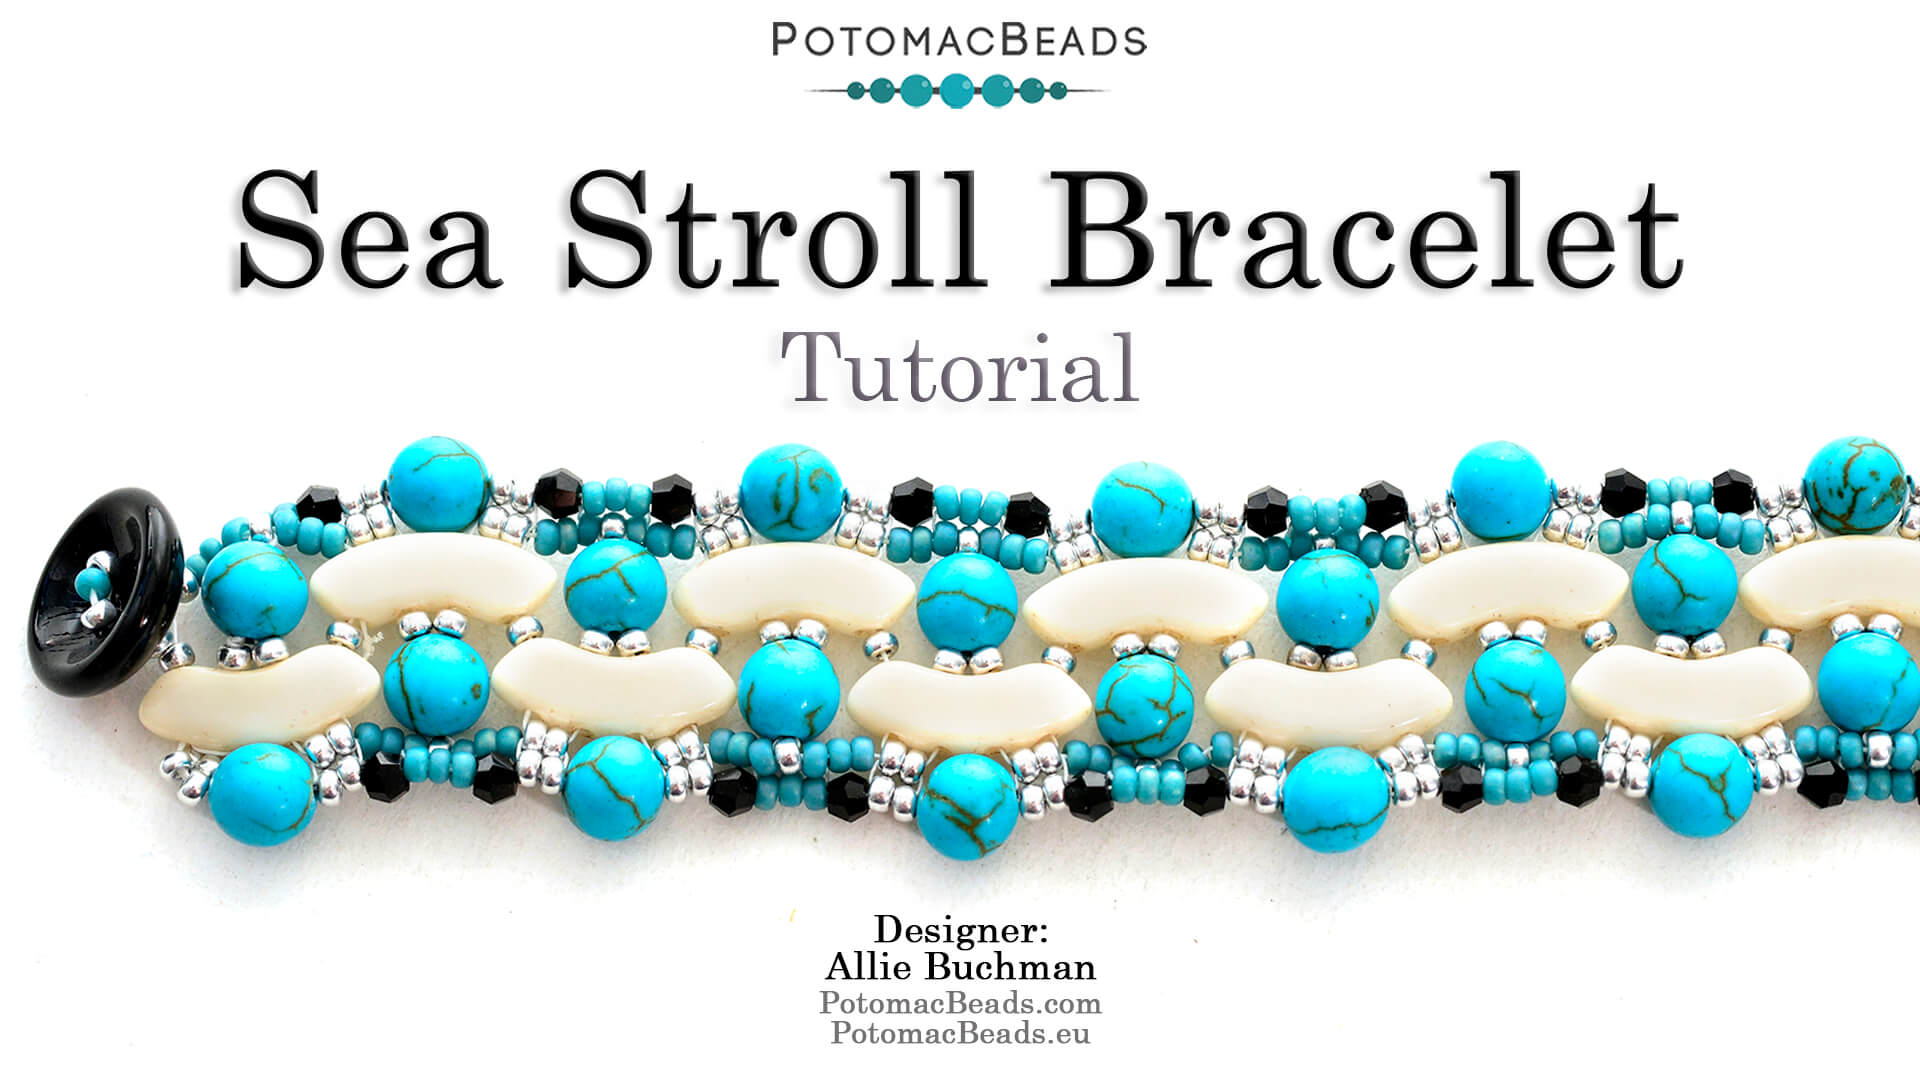 How to Bead Jewelry / Videos Sorted by Beads / QuadBow & PieDuo Bead Videos / Sea Stroll Bracelet Tutorial